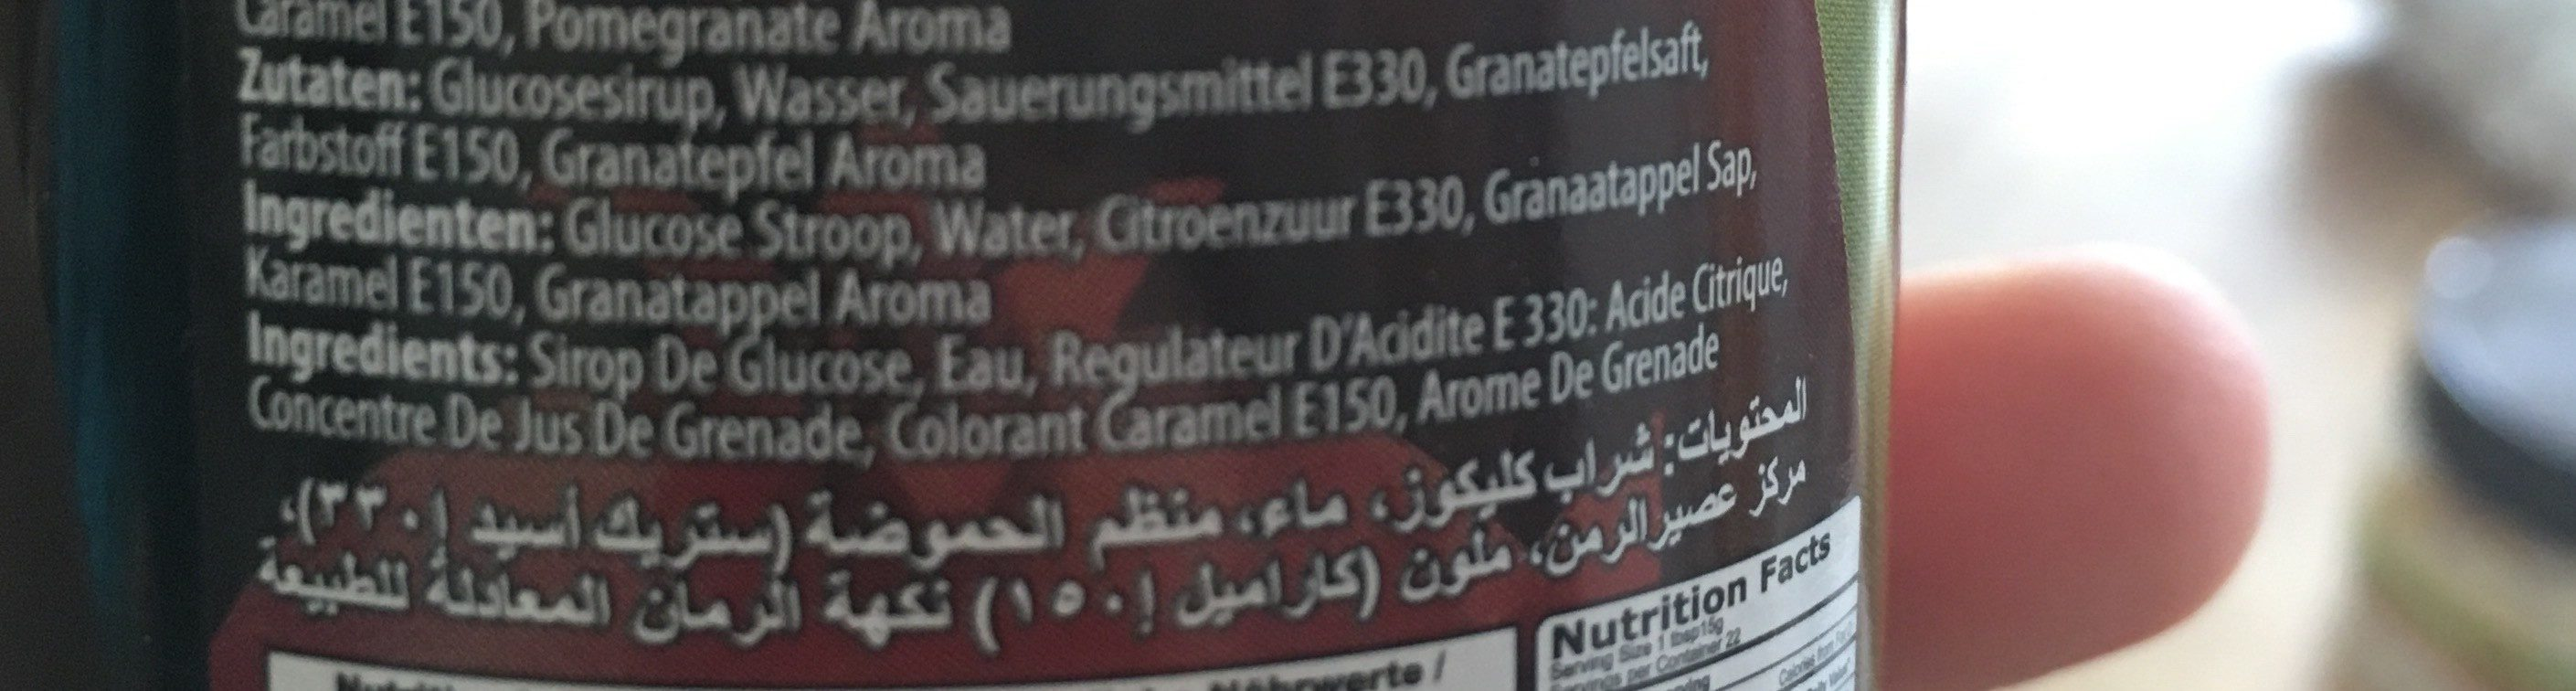 Melasse Arome De Grenade 33 CL Oncu X 12 Arev - Ingredients